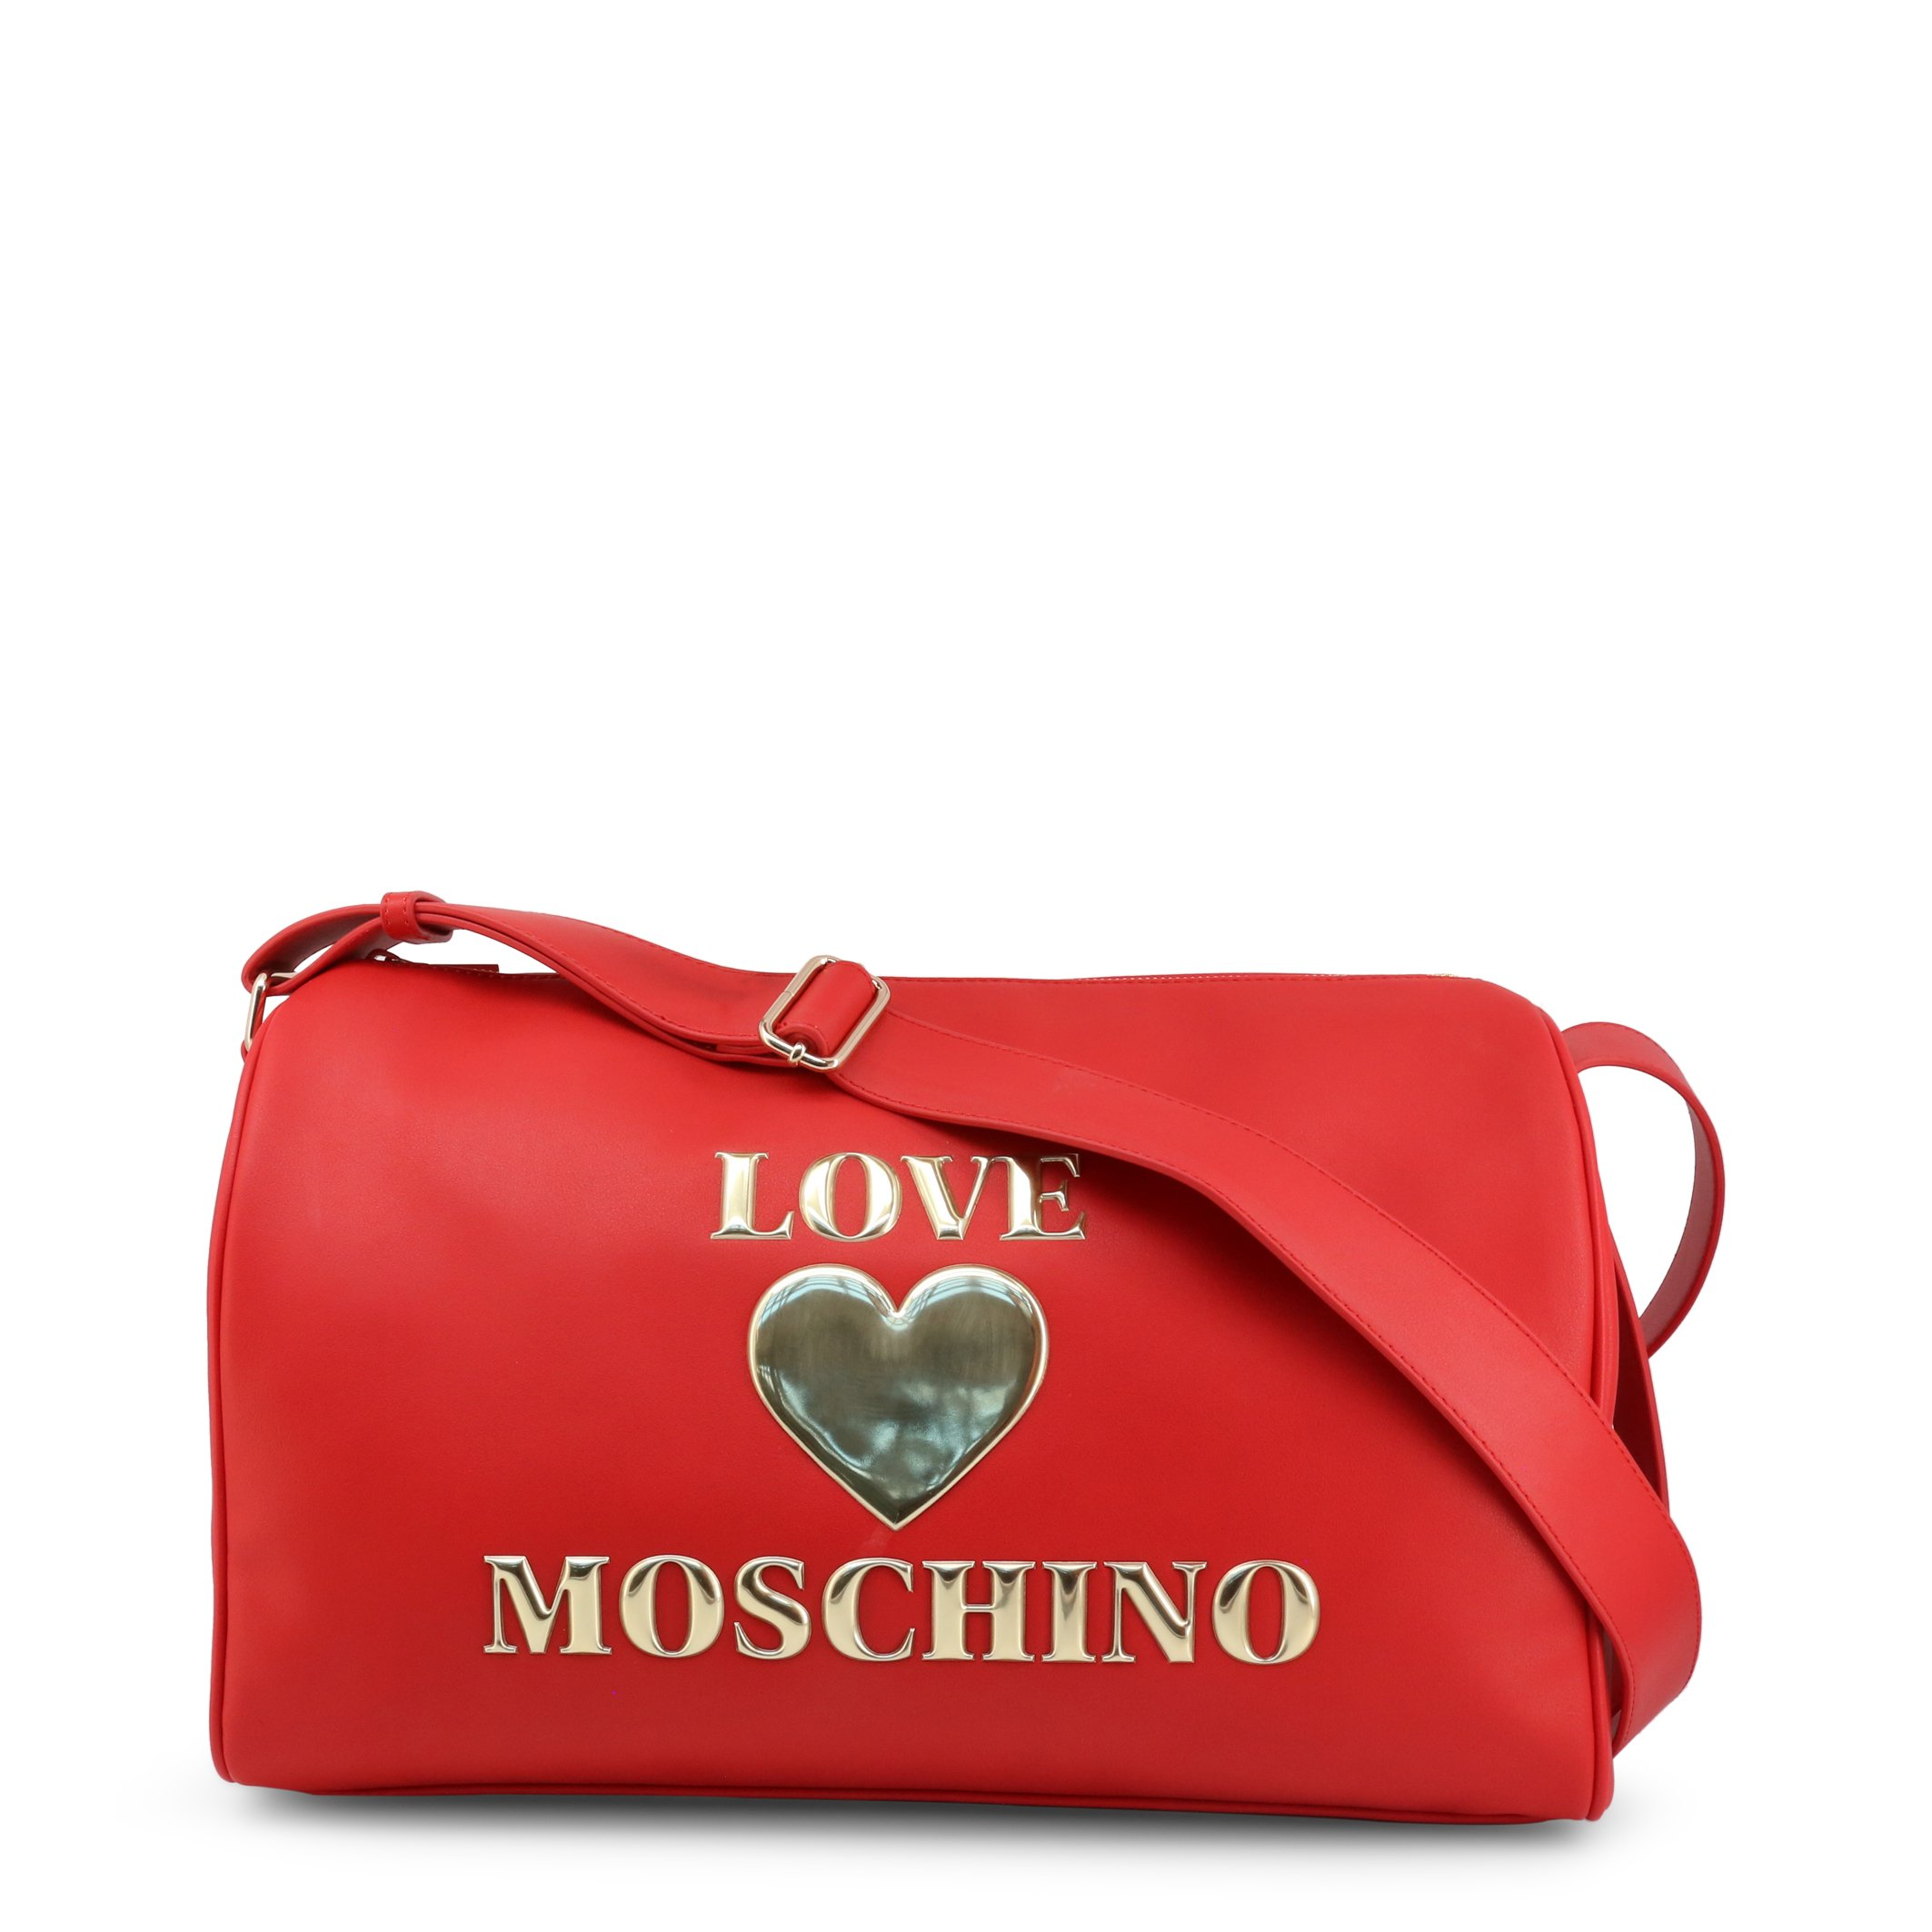 Love Moschino Women's Crossbody Bag Various Colours JC4039PP1BLE - red NOSIZE